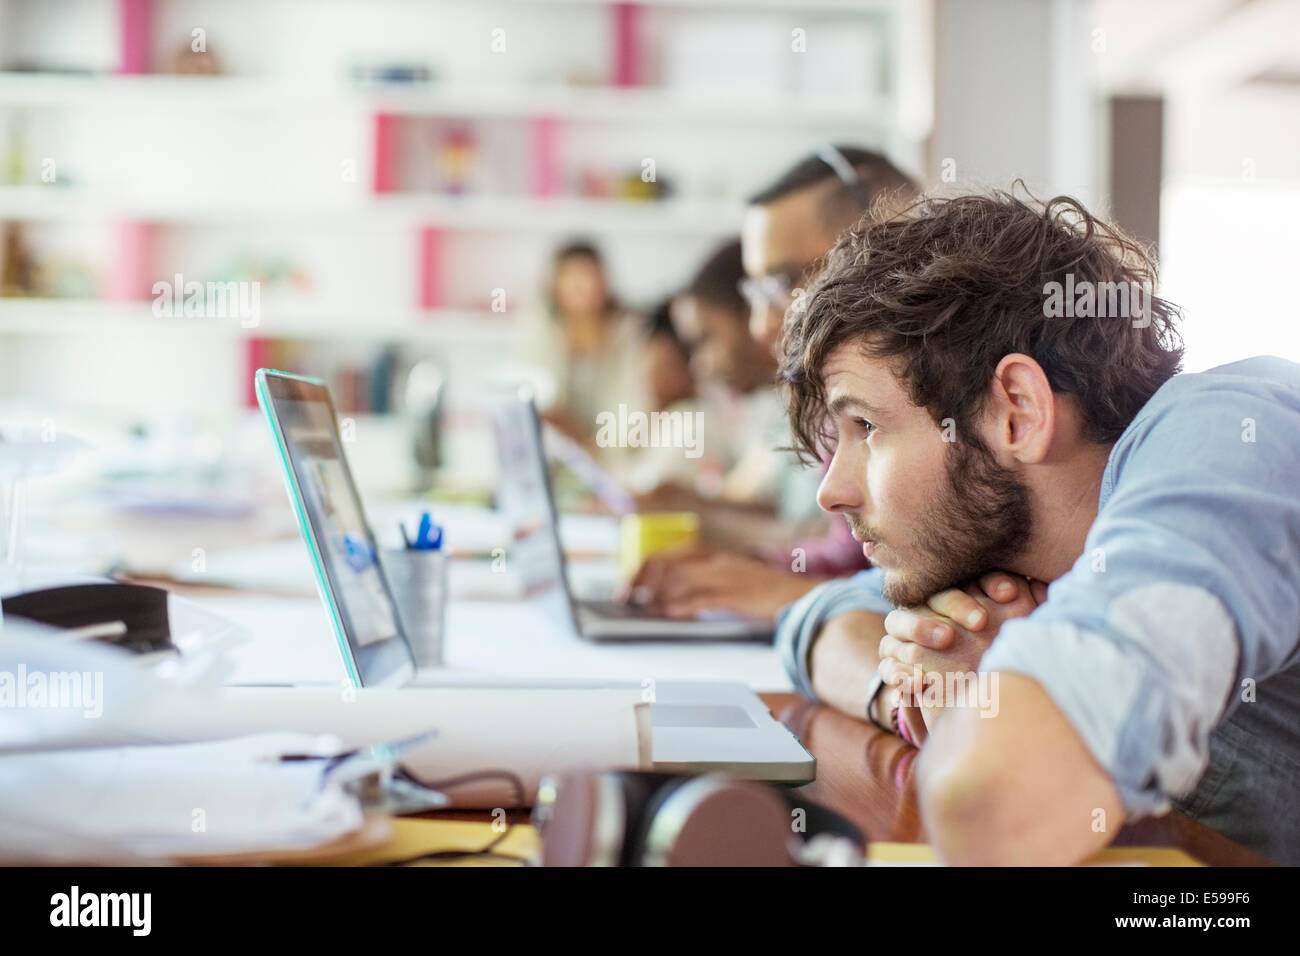 People working in office Photo Stock